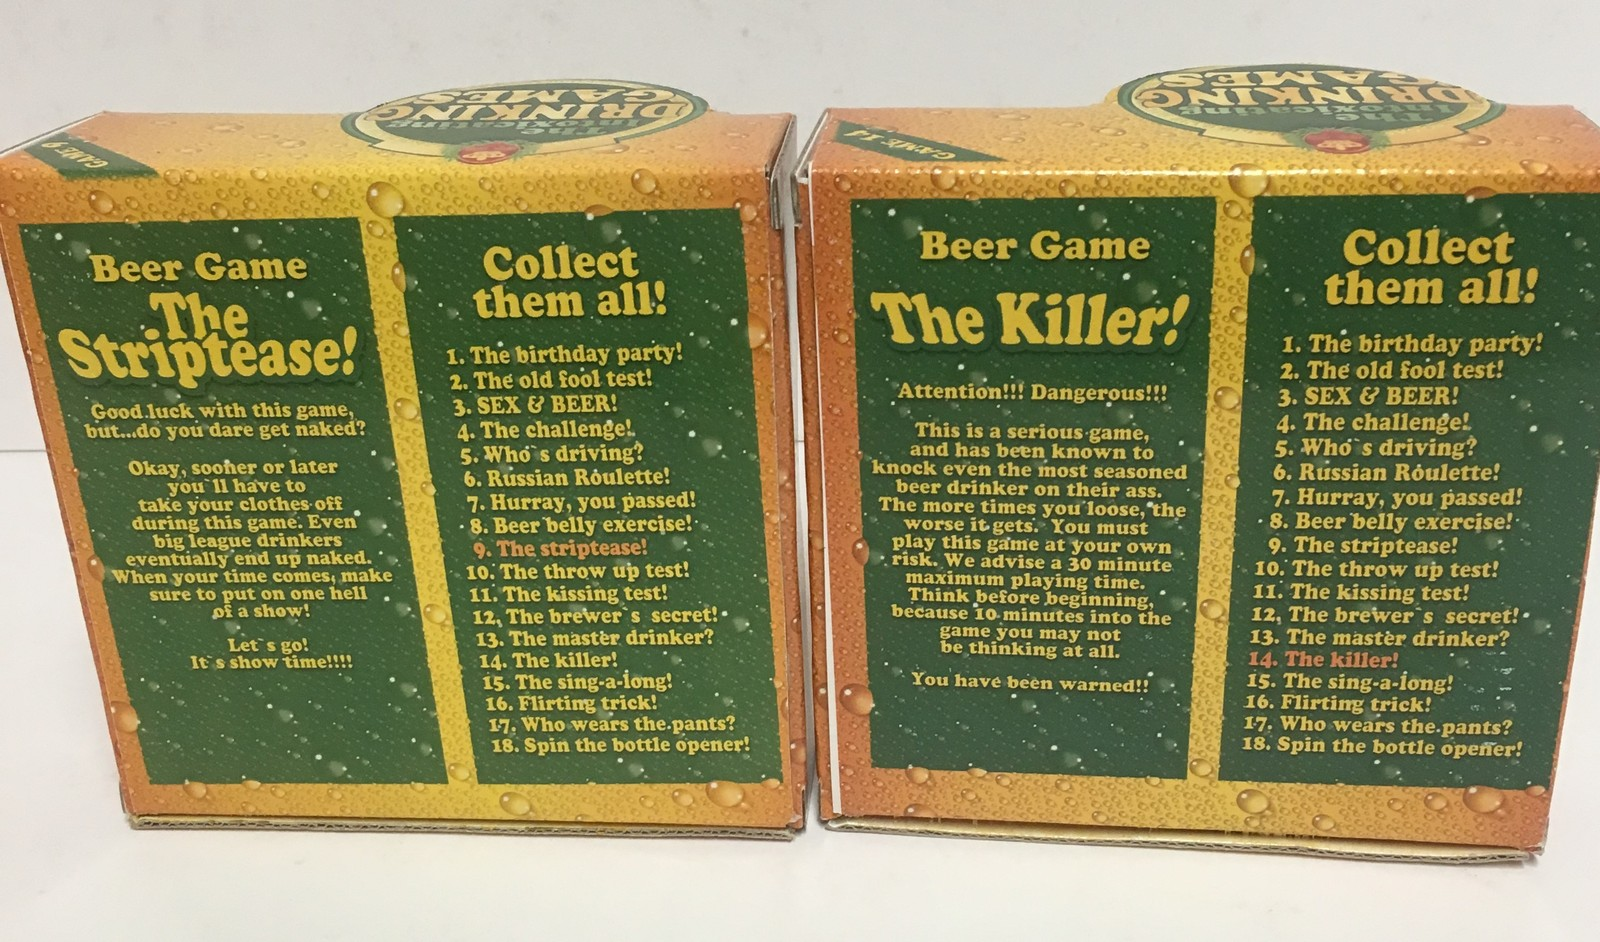 Beer Games The Striptease and The Killer #9 #14 ADULTS Drinking Games image 5